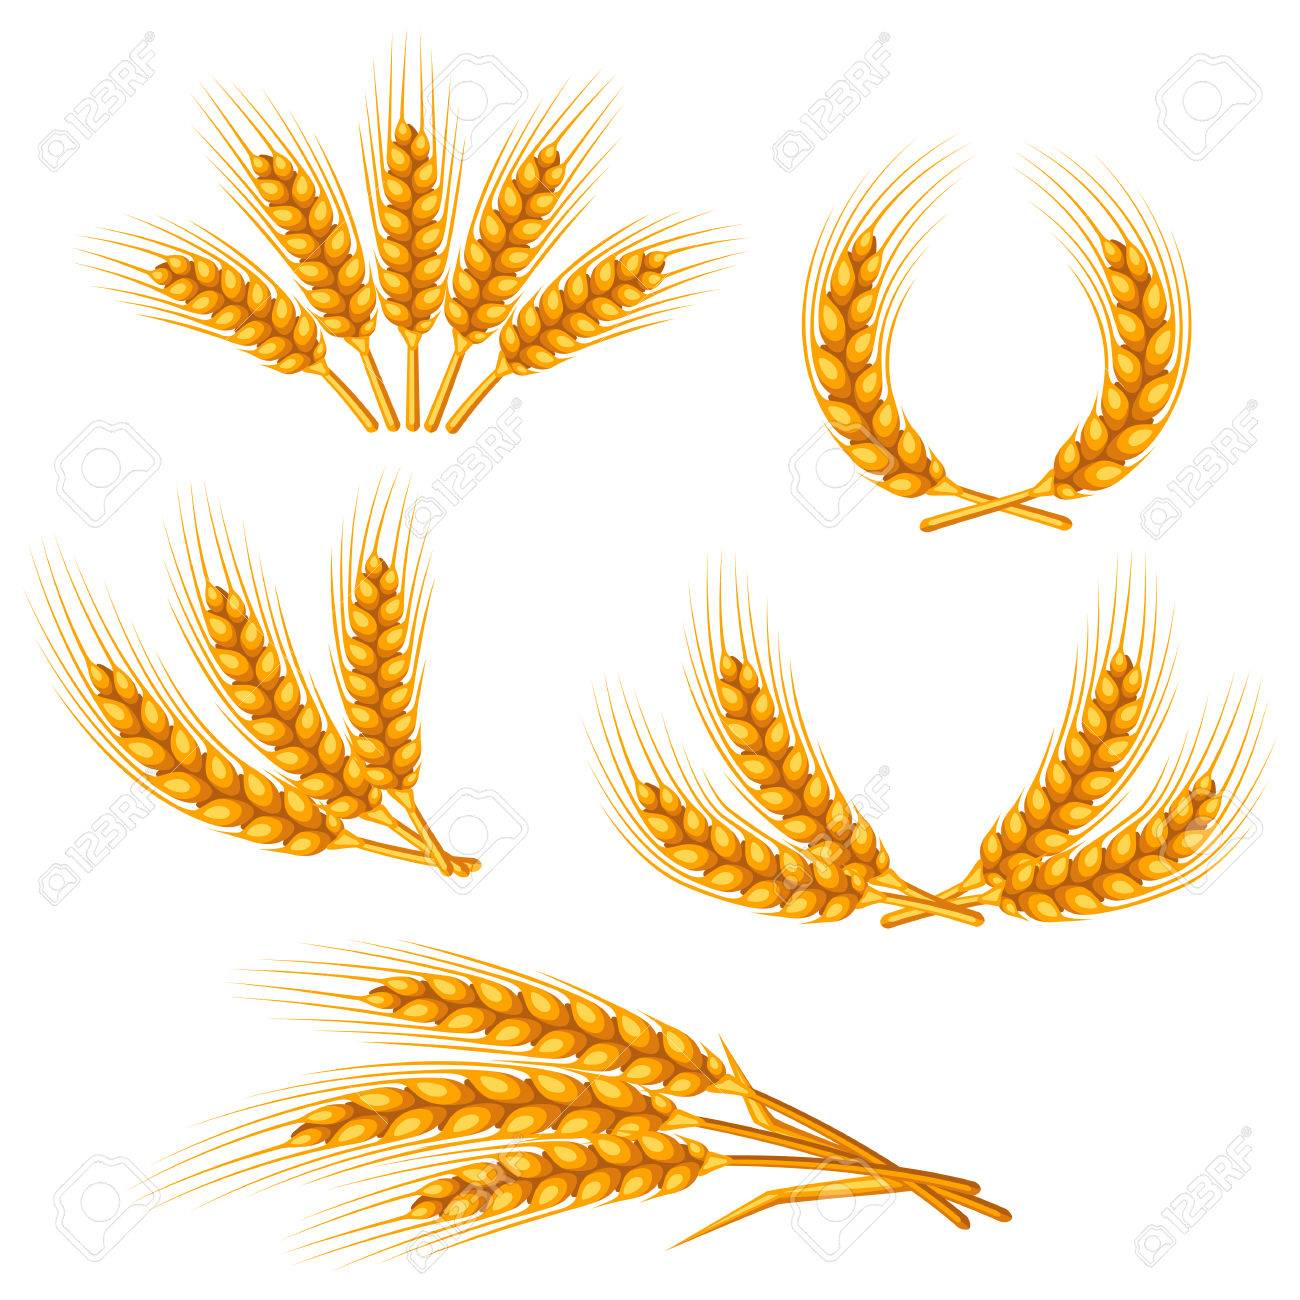 Design elements with wheat. Agricultural image natural golden ears of barley or rye. Objects for decoration bread packaging, beer labels. - 58135489